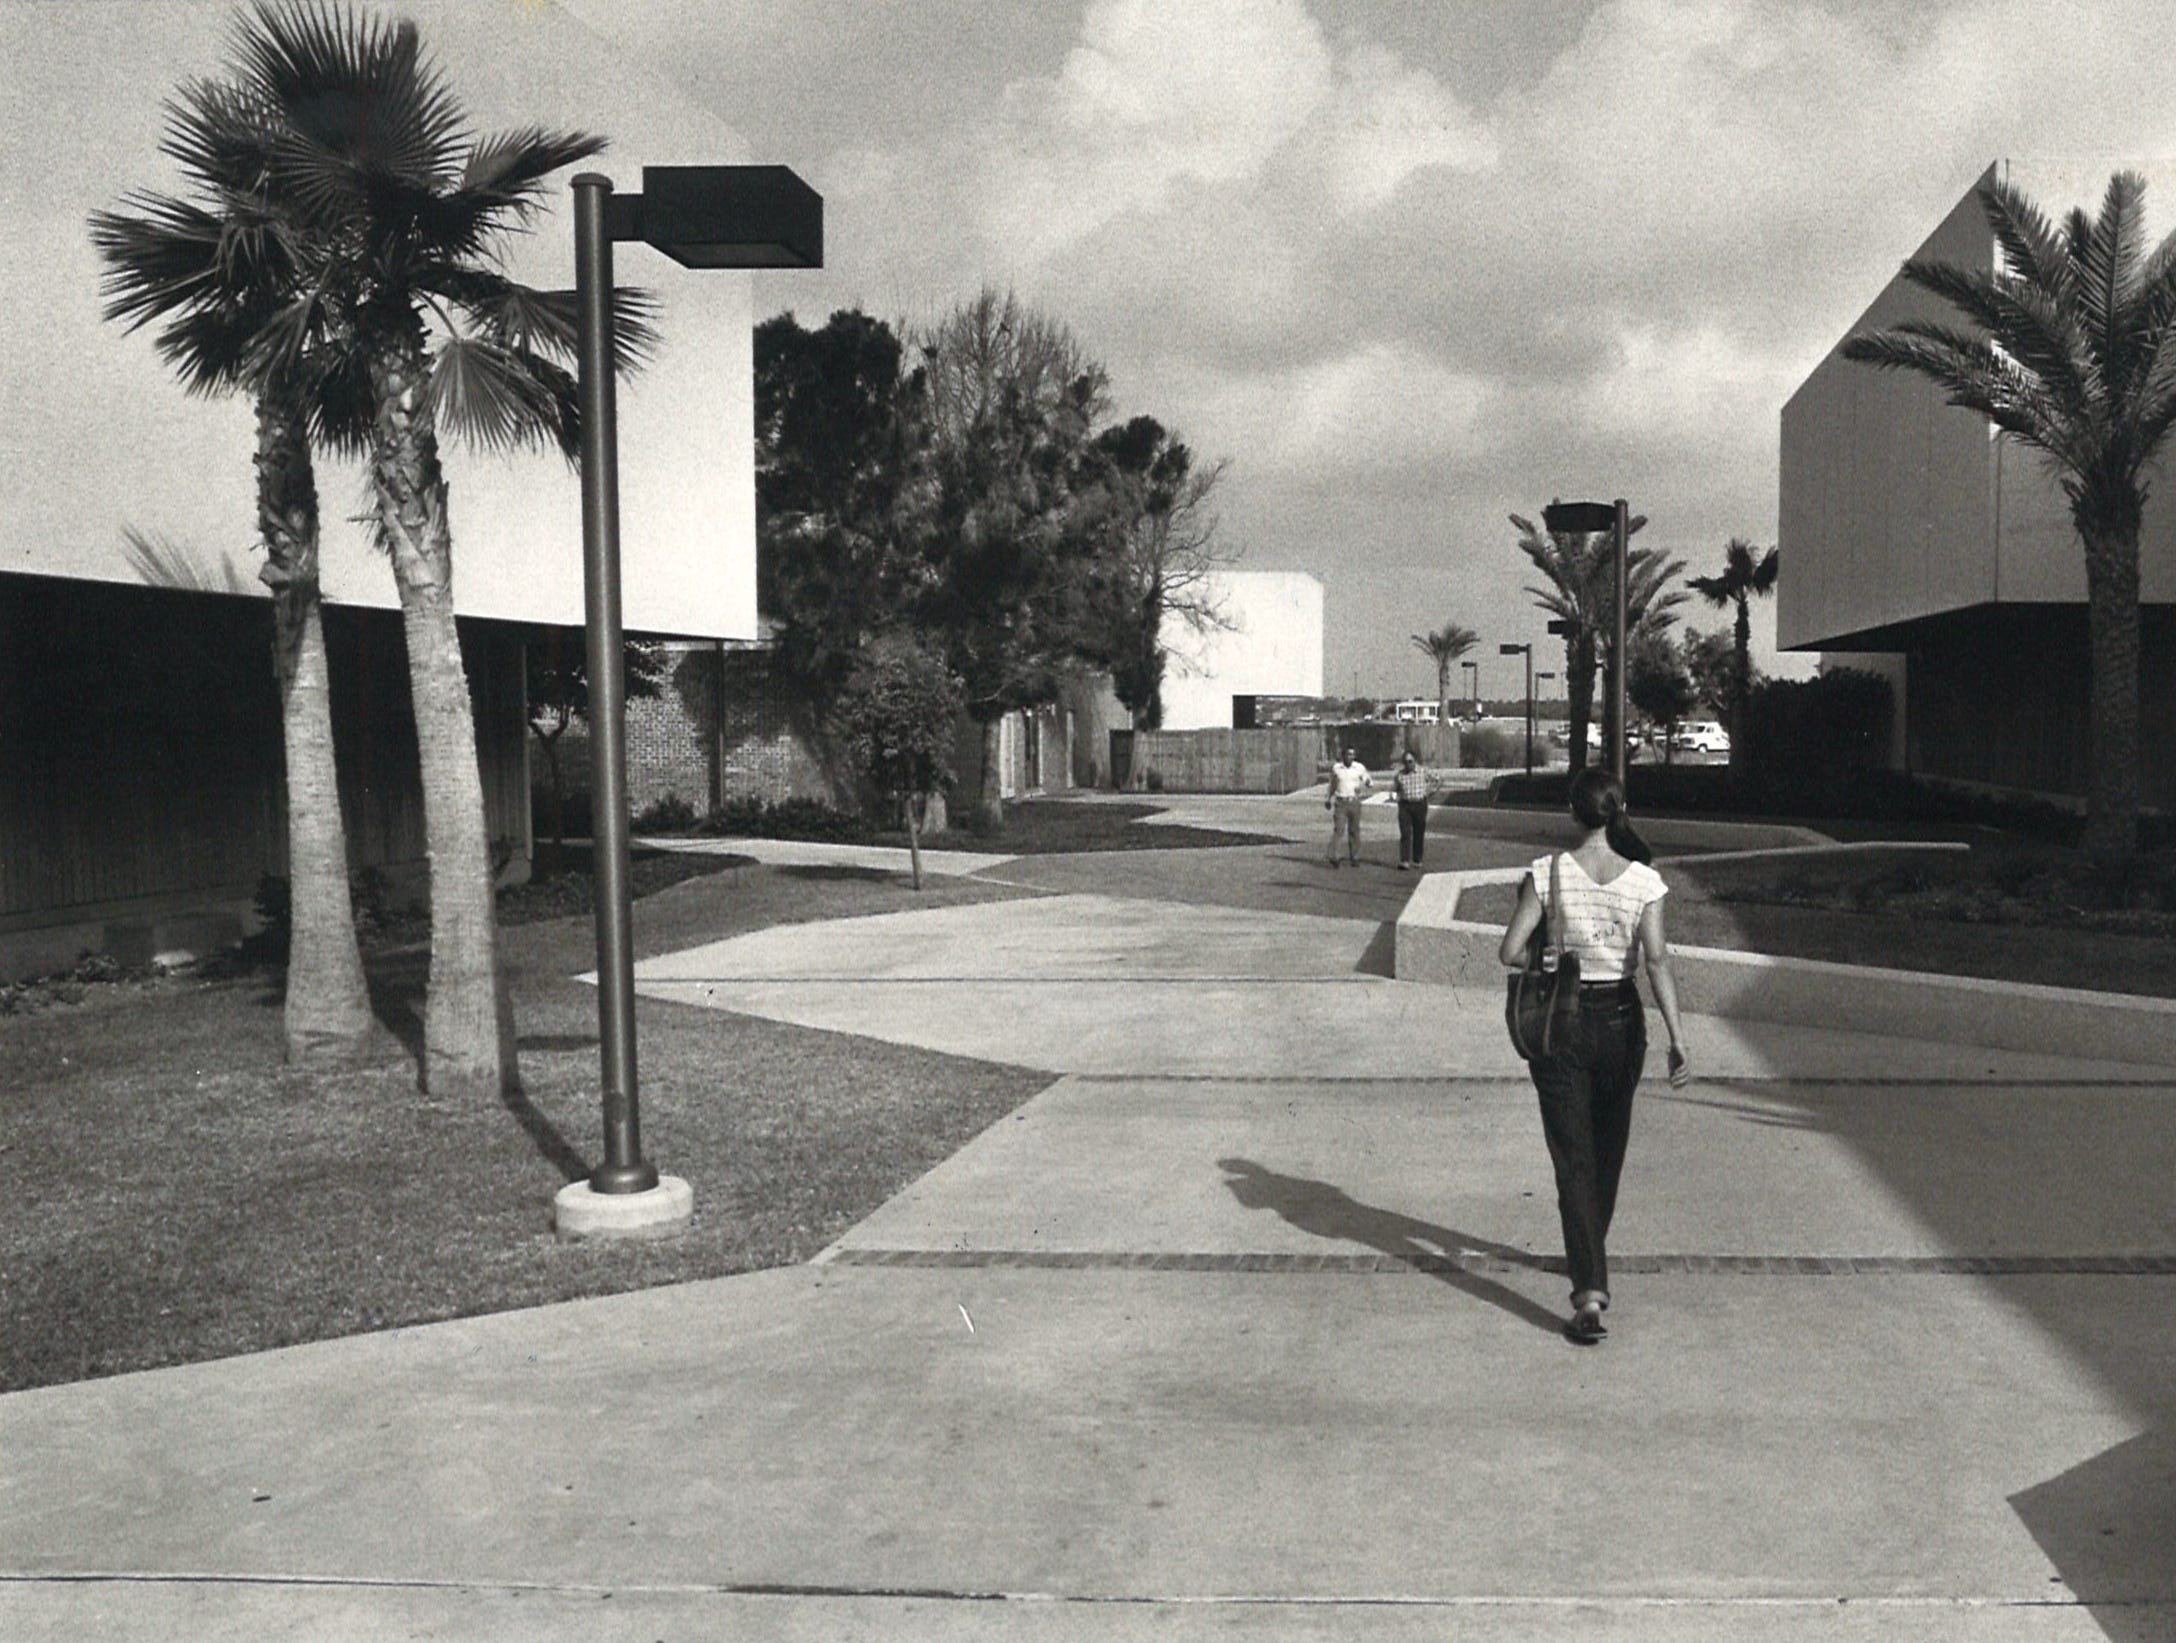 Students walk on the Corpus Christi State University campus in June 1982.